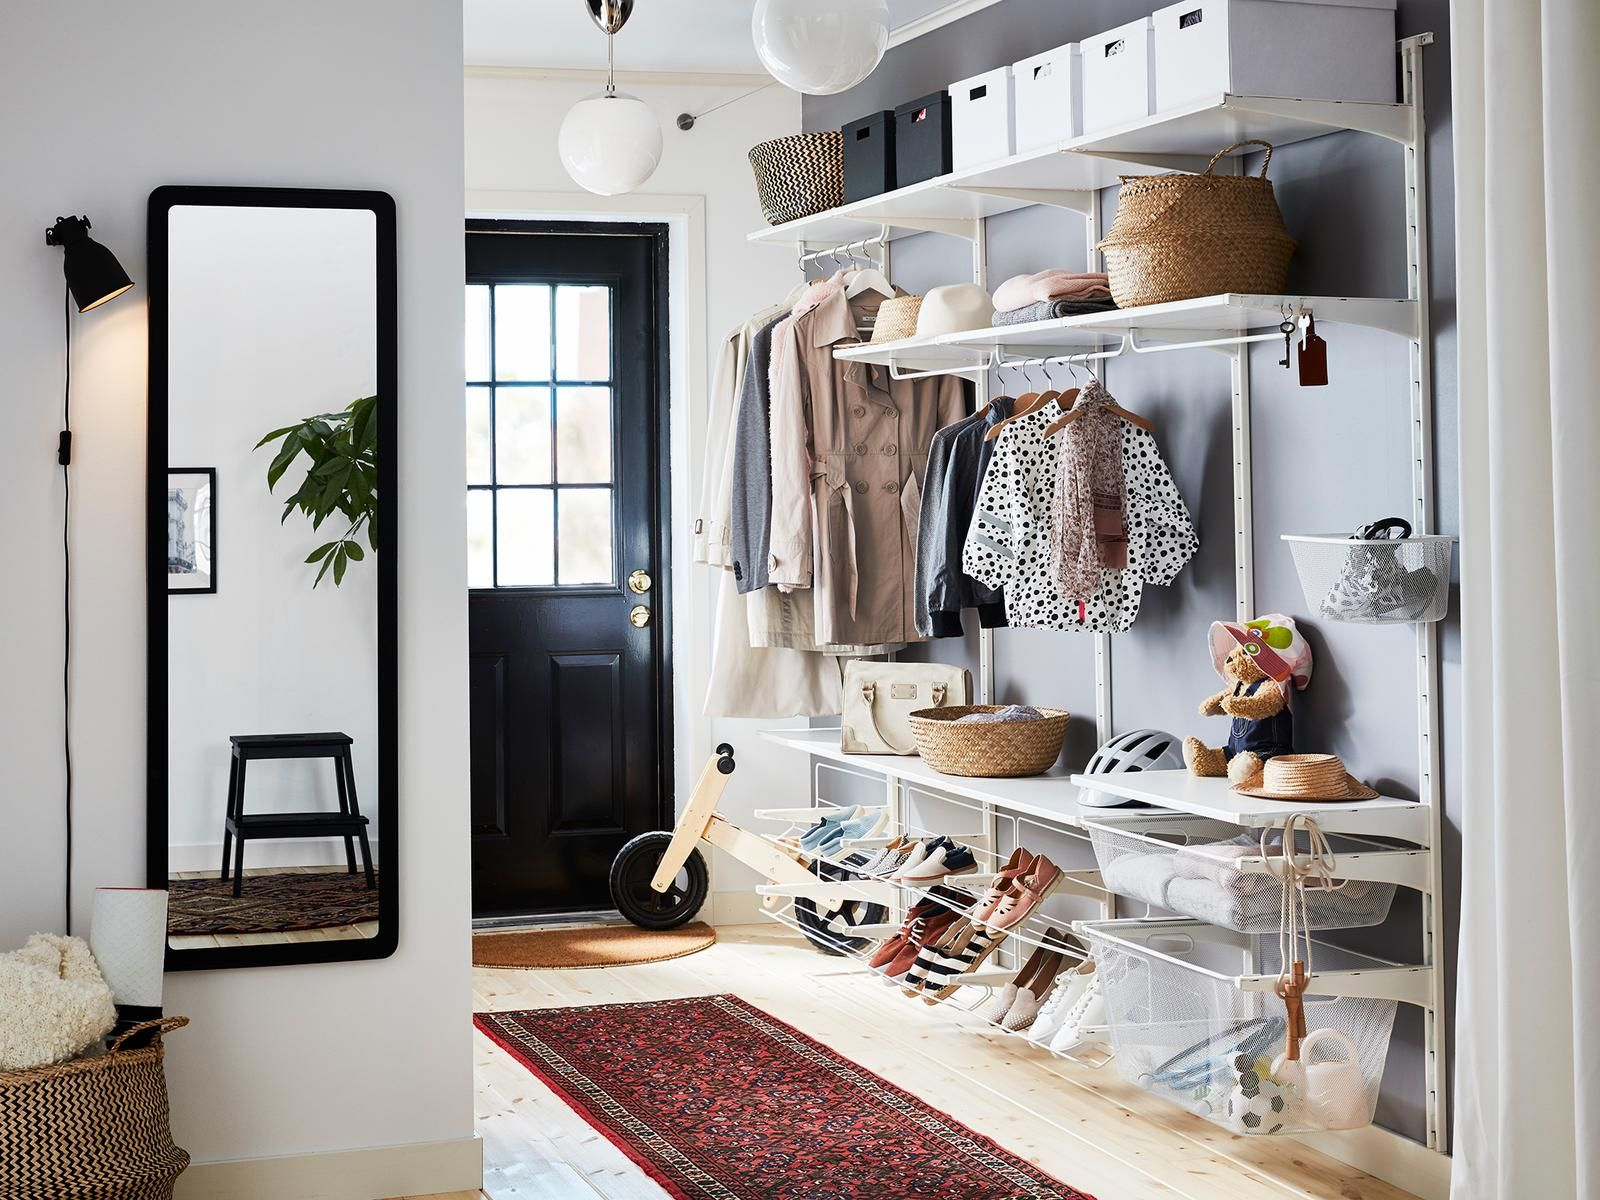 How to declutter a small space The hallway Hallway